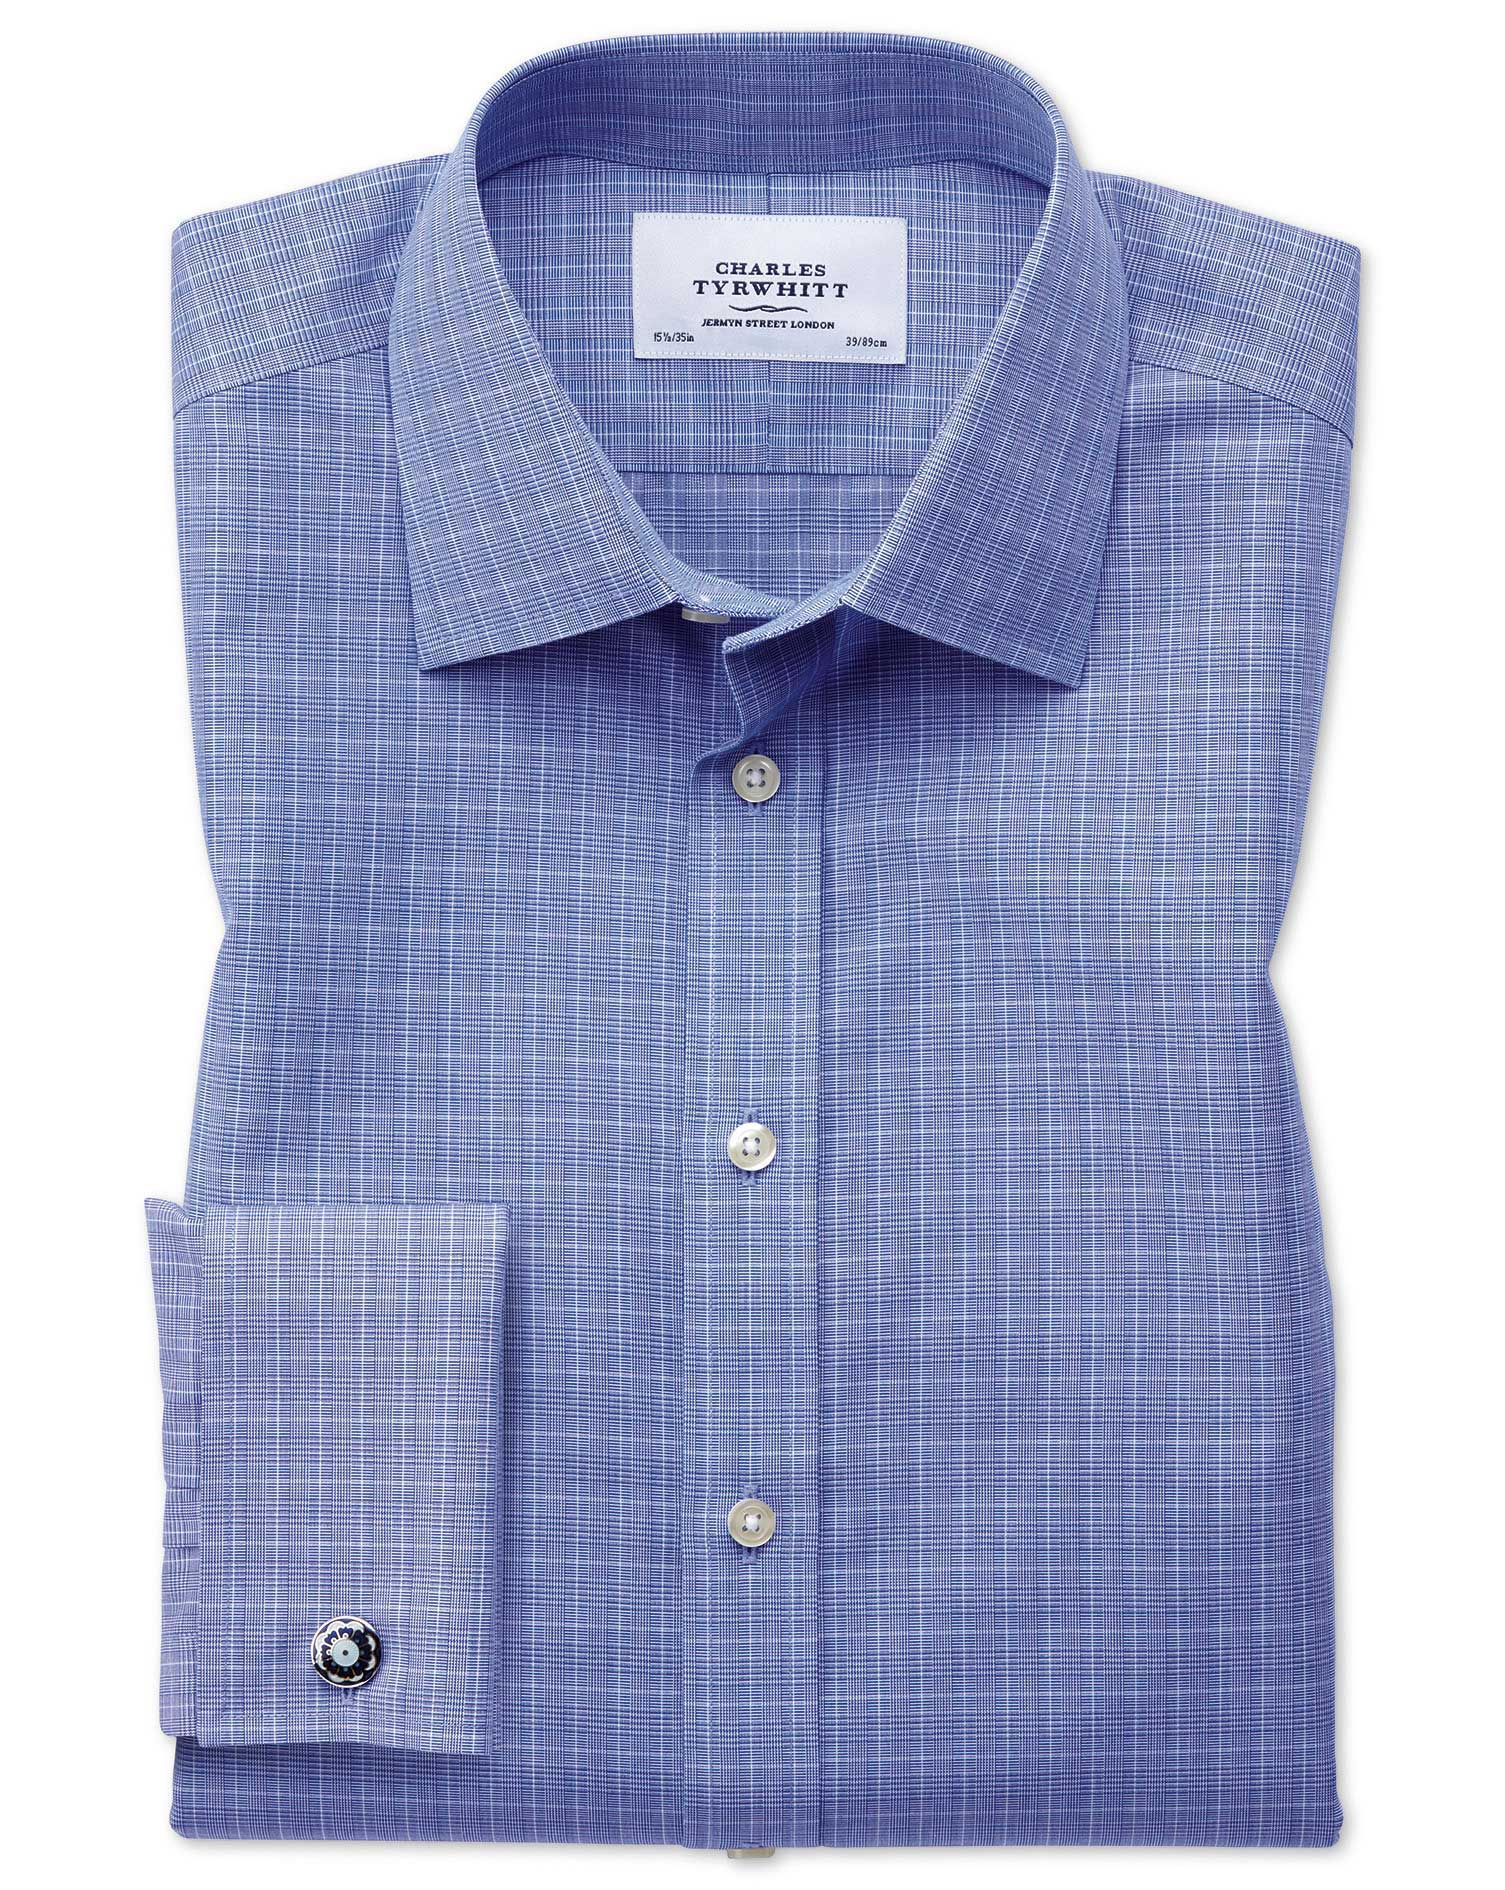 Classic Fit Non-Iron Prince Of Wales Blue Cotton Formal Shirt Double Cuff Size 16.5/34 by Charles Ty